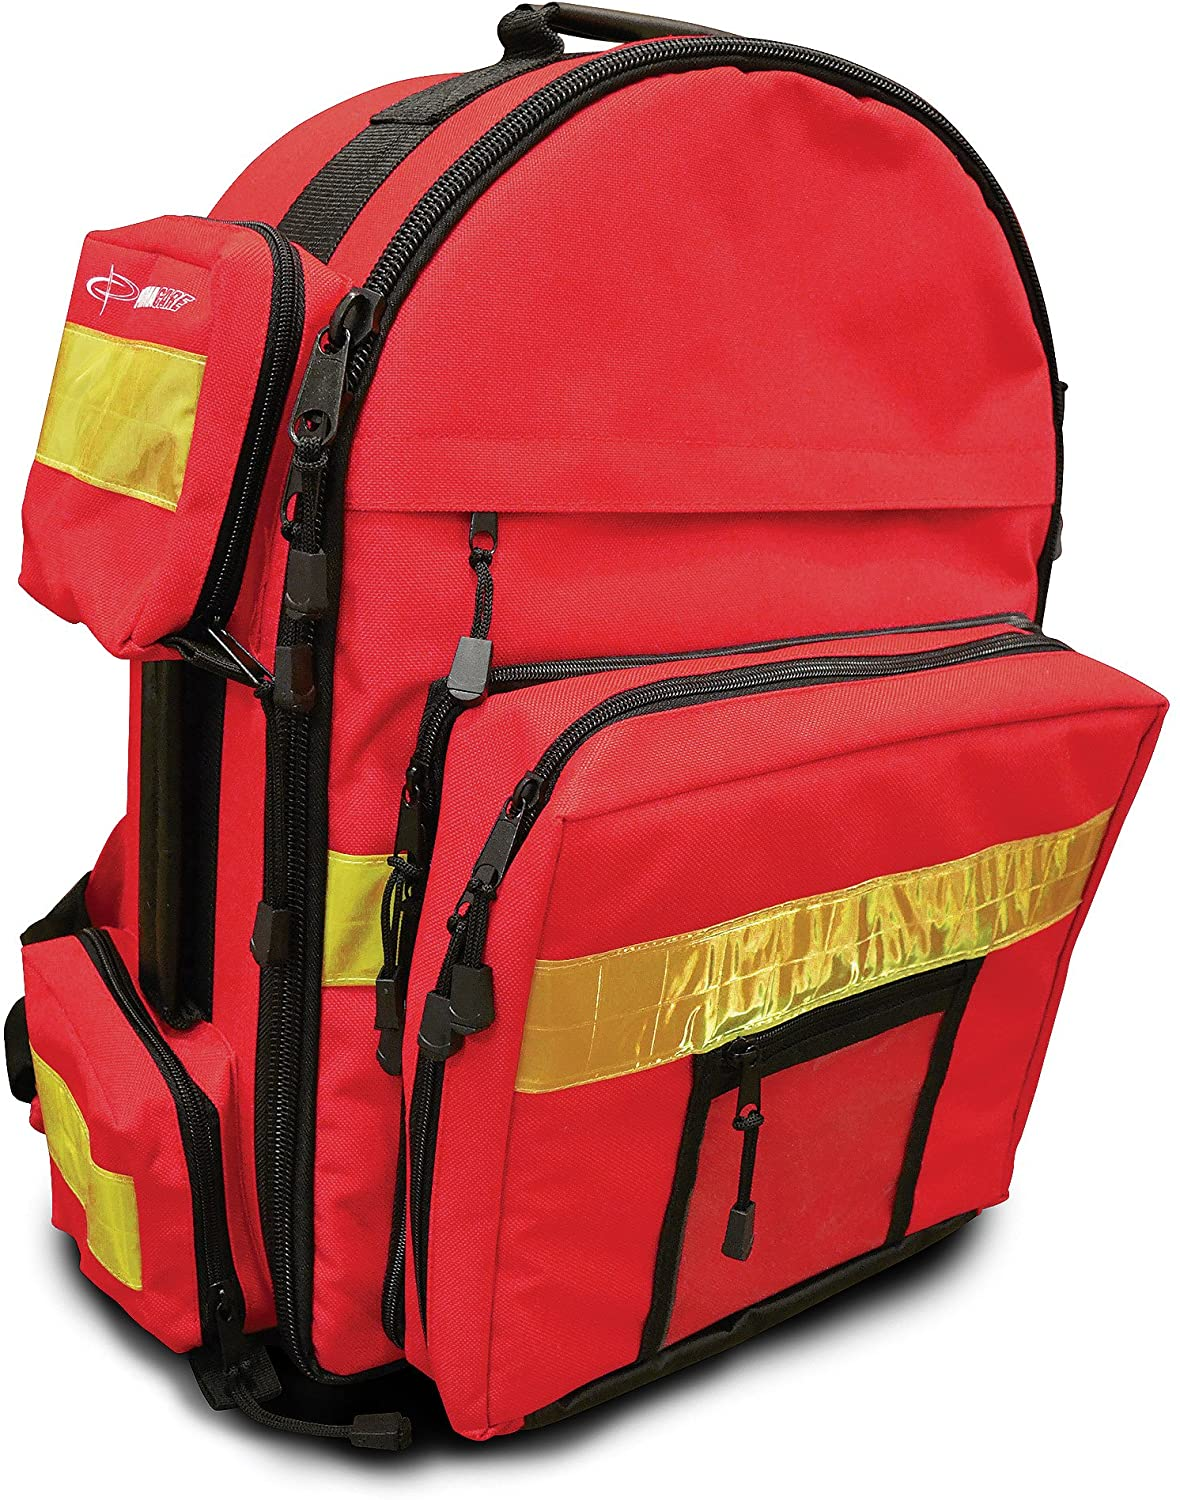 Primacare KP-4183 Trauma Back Pack, 17